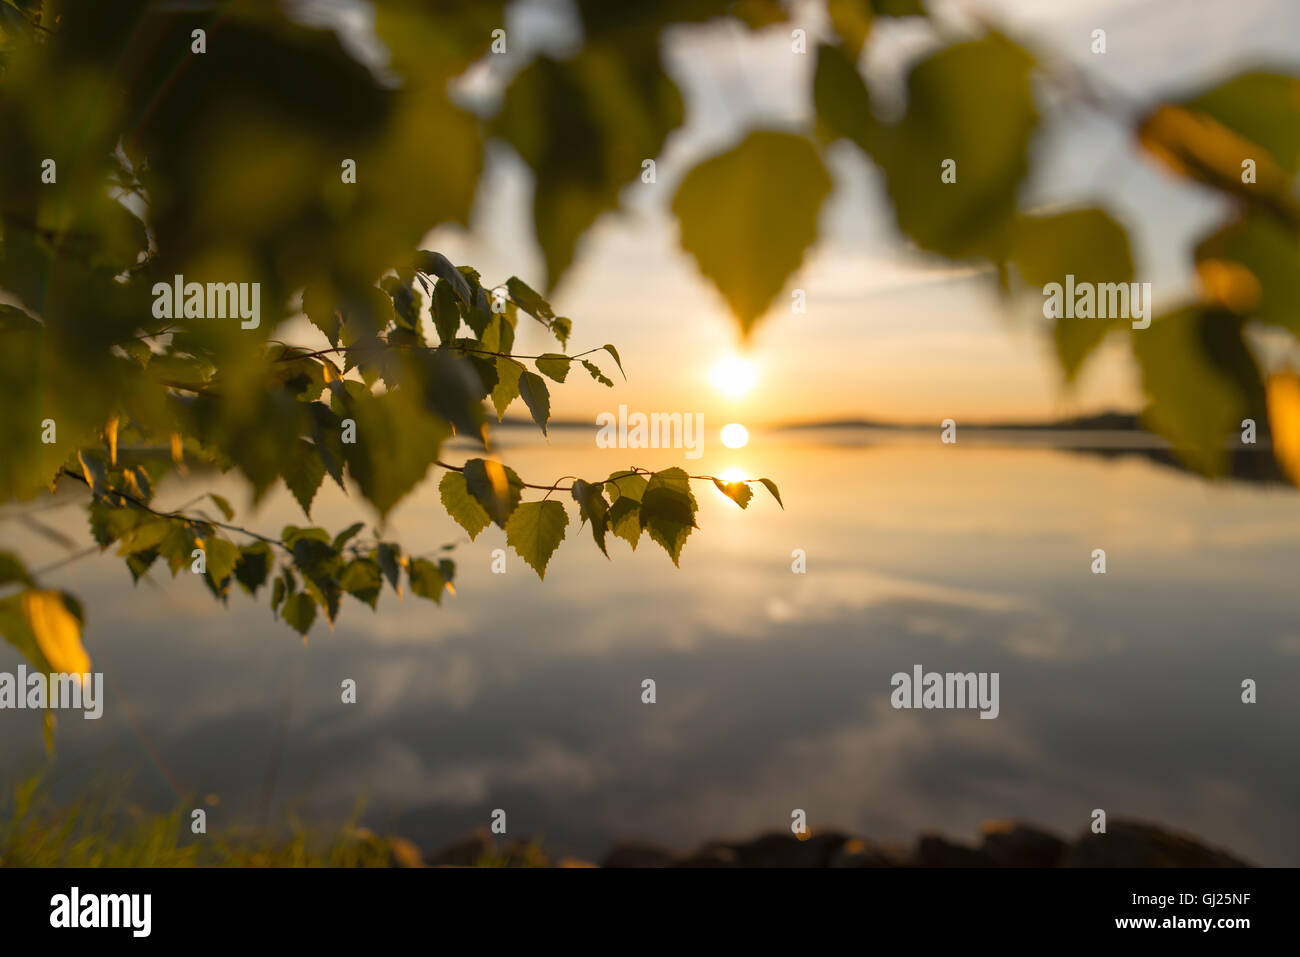 Sunset seen through leafs - Stock Image